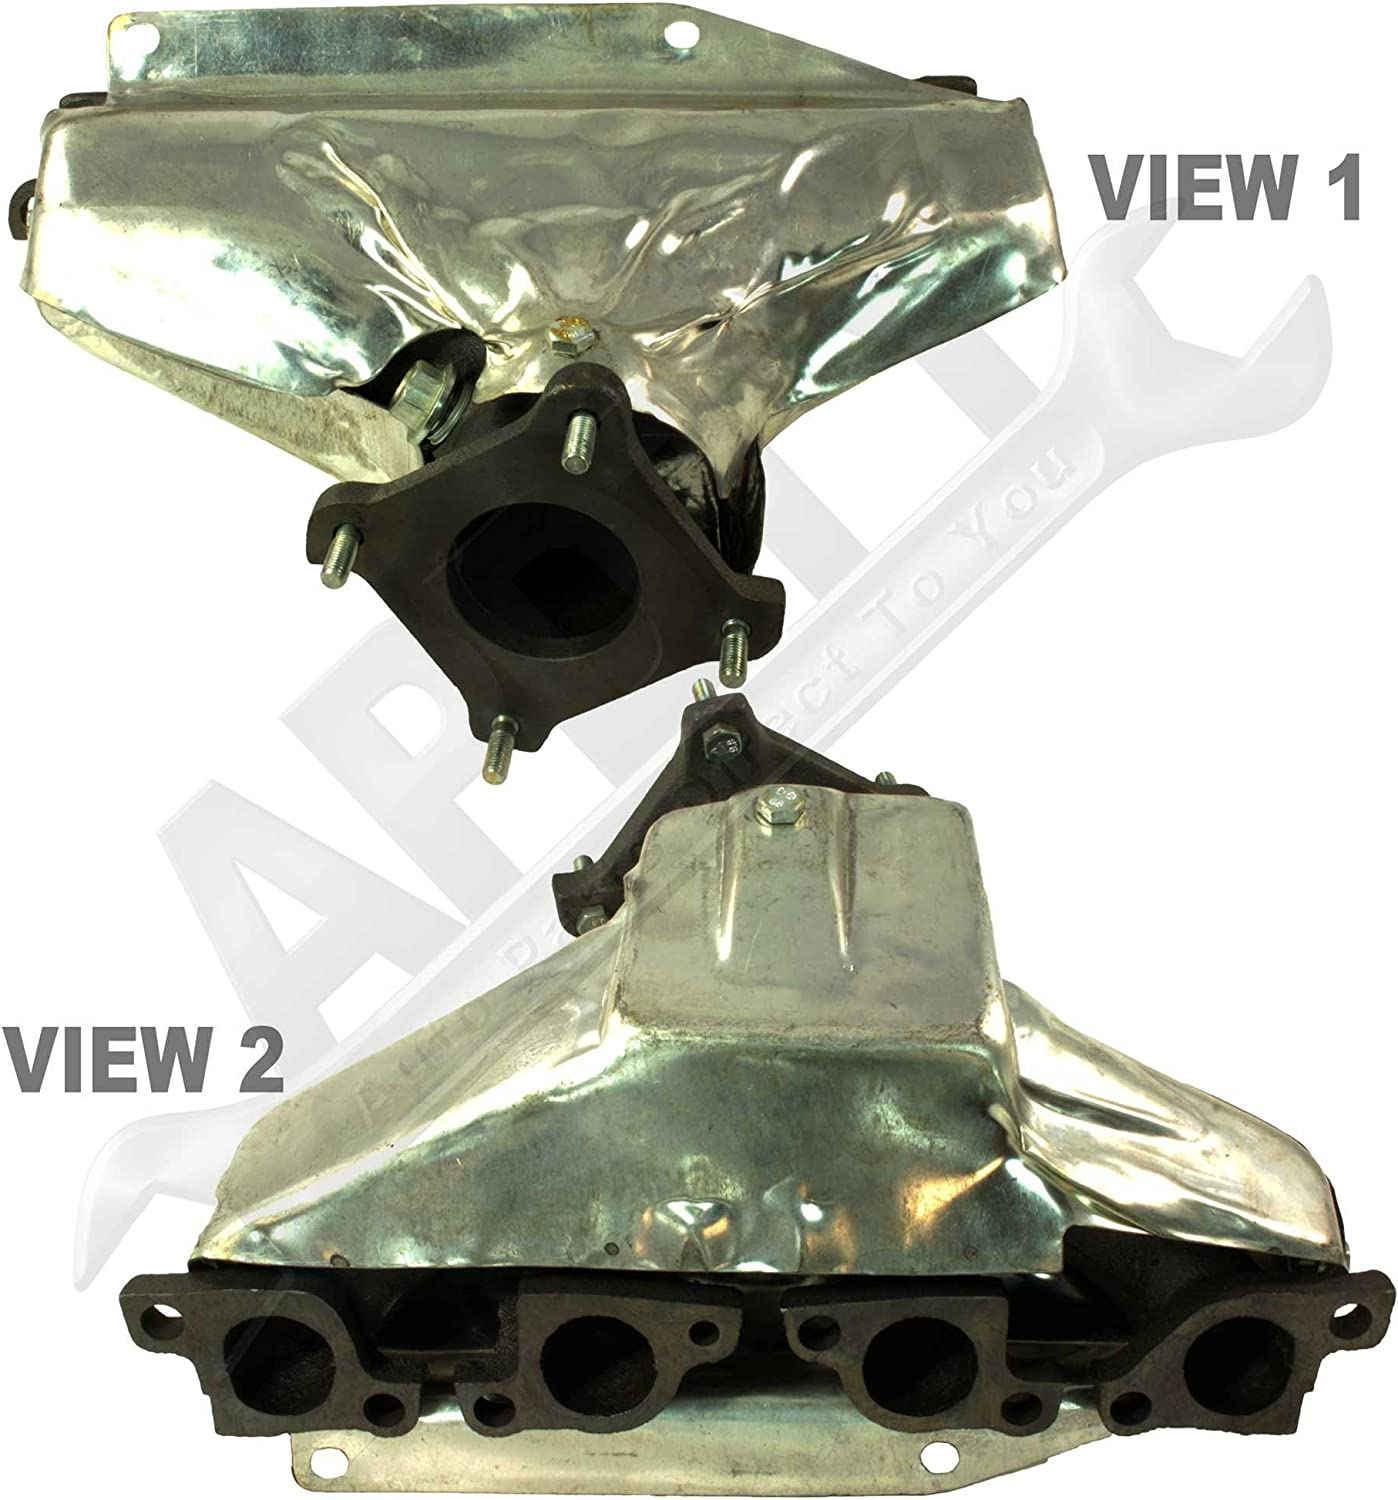 APDTY 112509 Exhaust Manifold Cast Iron Assembly Fits 1995-1999 Dodge Neon w//2.0L Engine 8th Digit Of VIN C // 1996-1997 Plymouth Breeze w//2.0L Engine // 1995-1999 Plymouth N // 1995-1997 Dodge Stratus w//2.0L Engine 8th Digit Of VIN C 8th Digit Of VIN C